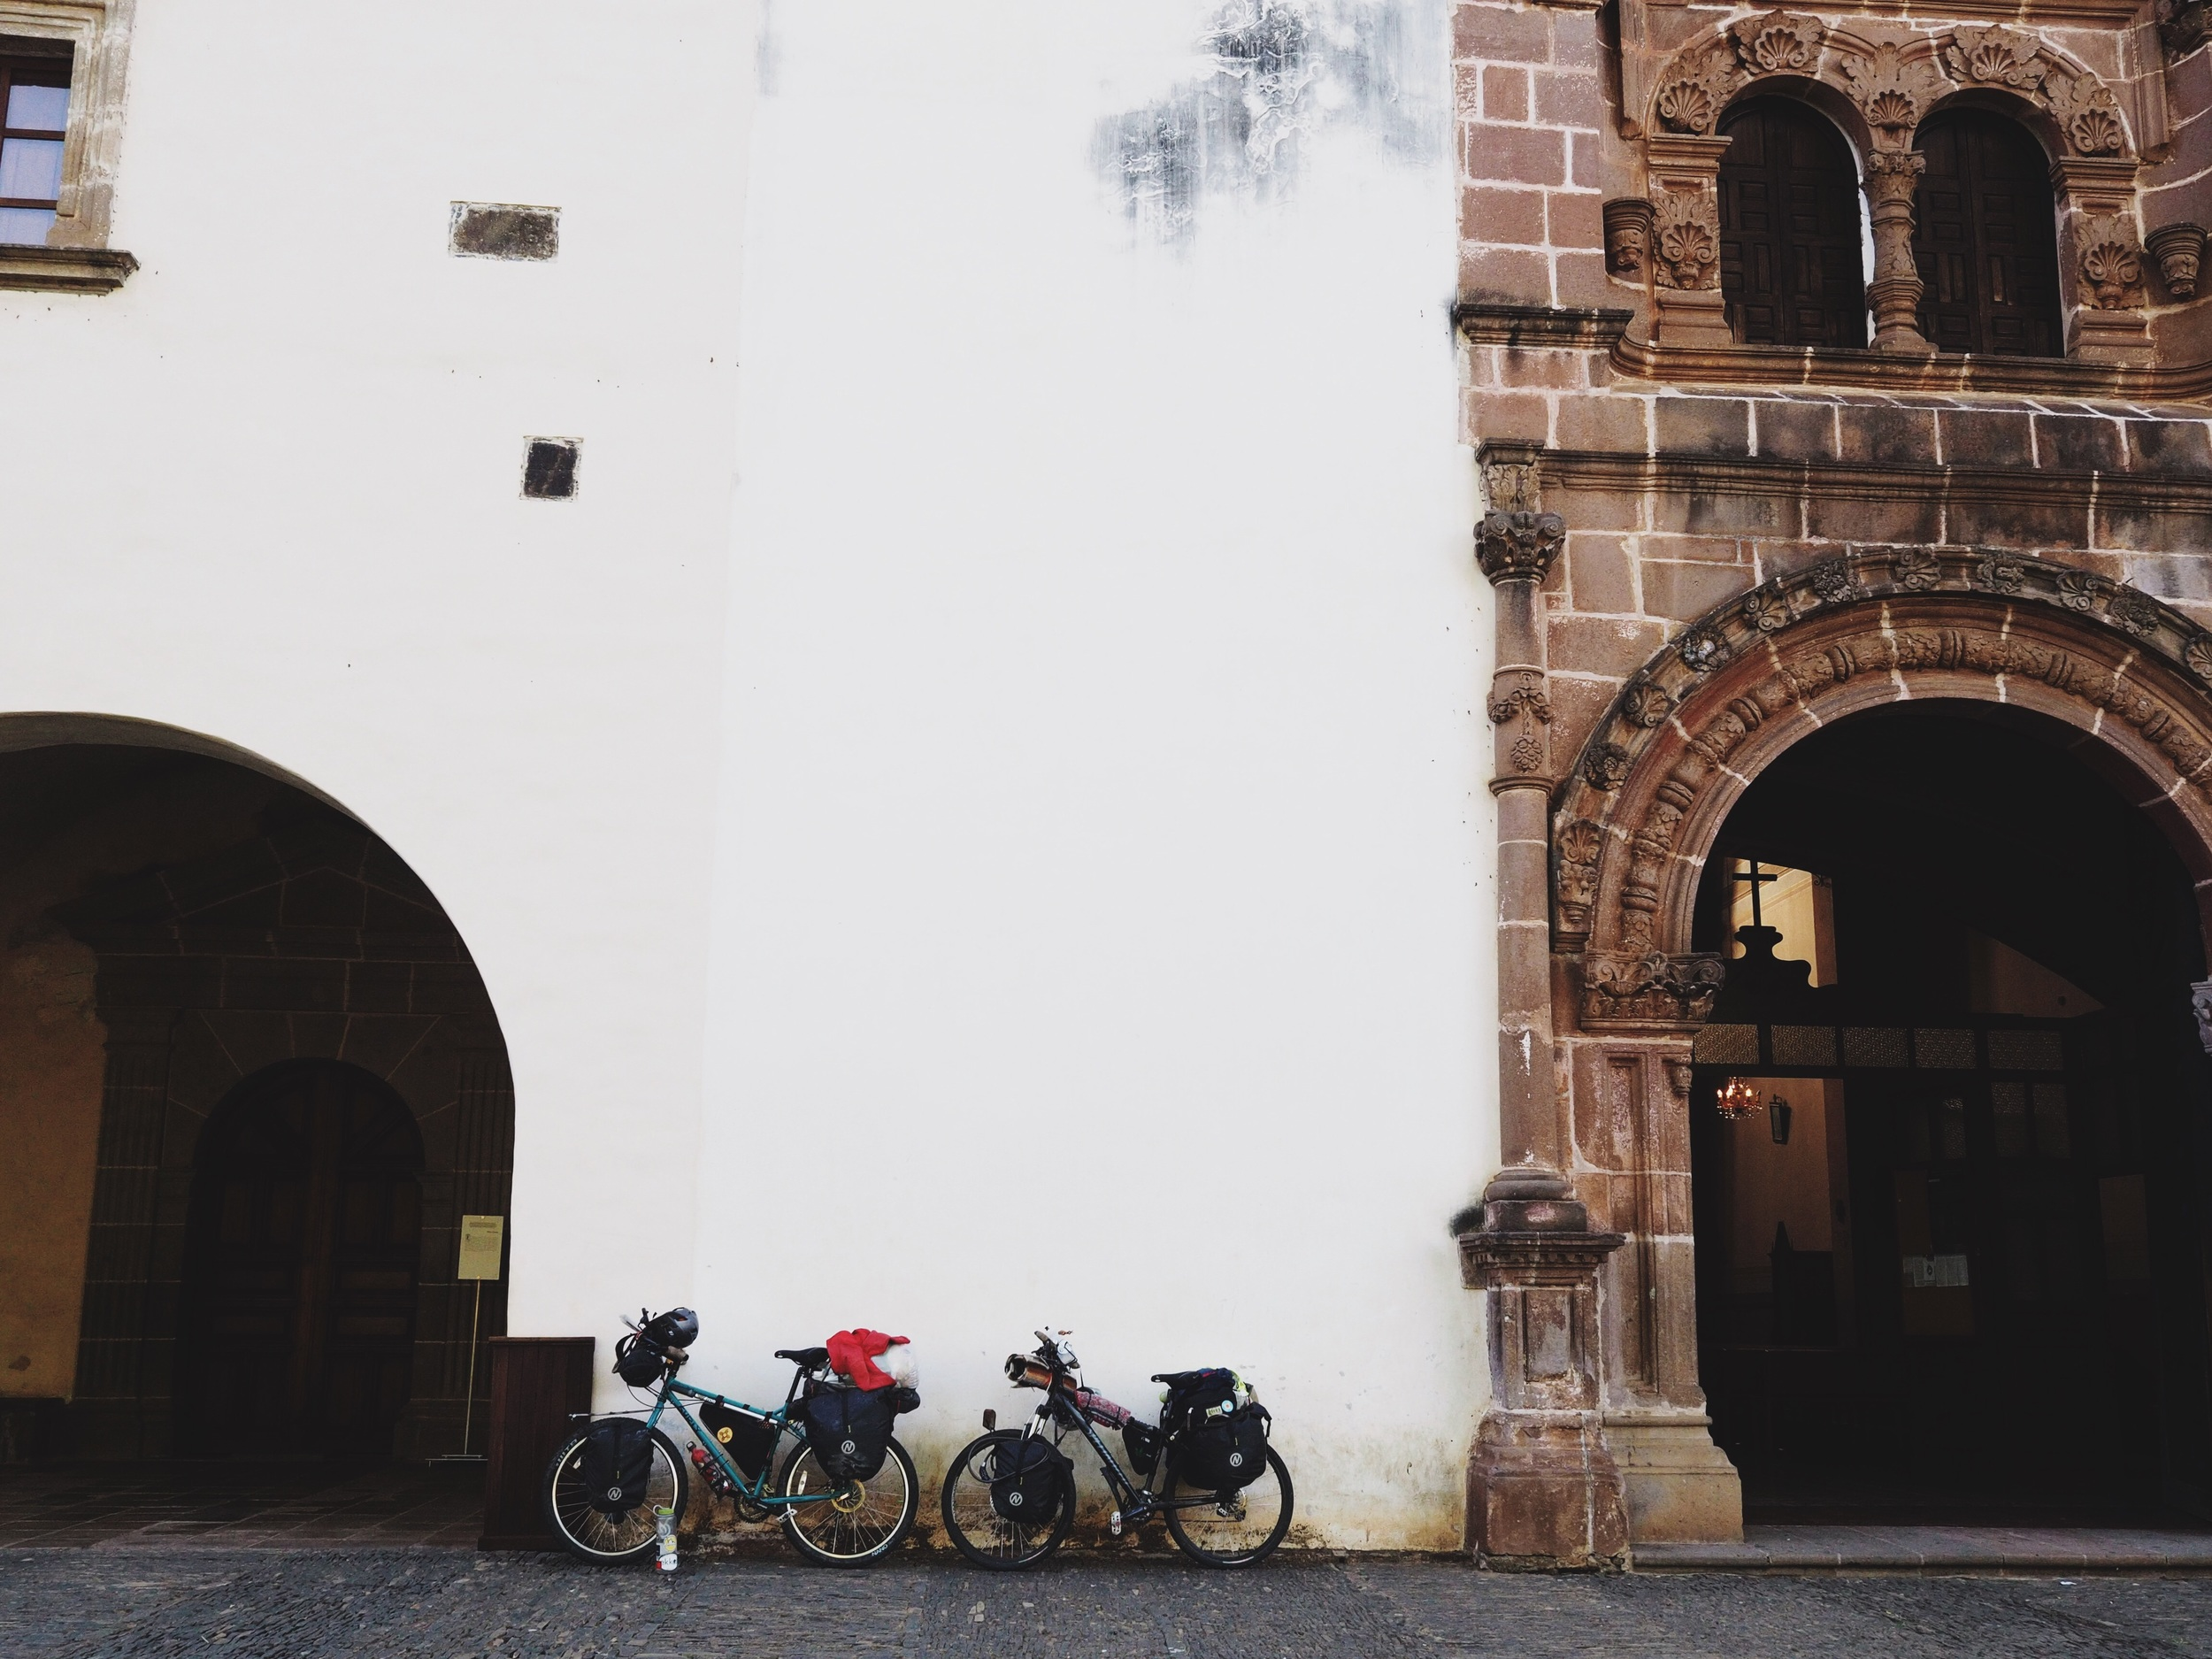 Bikes parked outside the old Jesuit convent in Tzintzuntzan